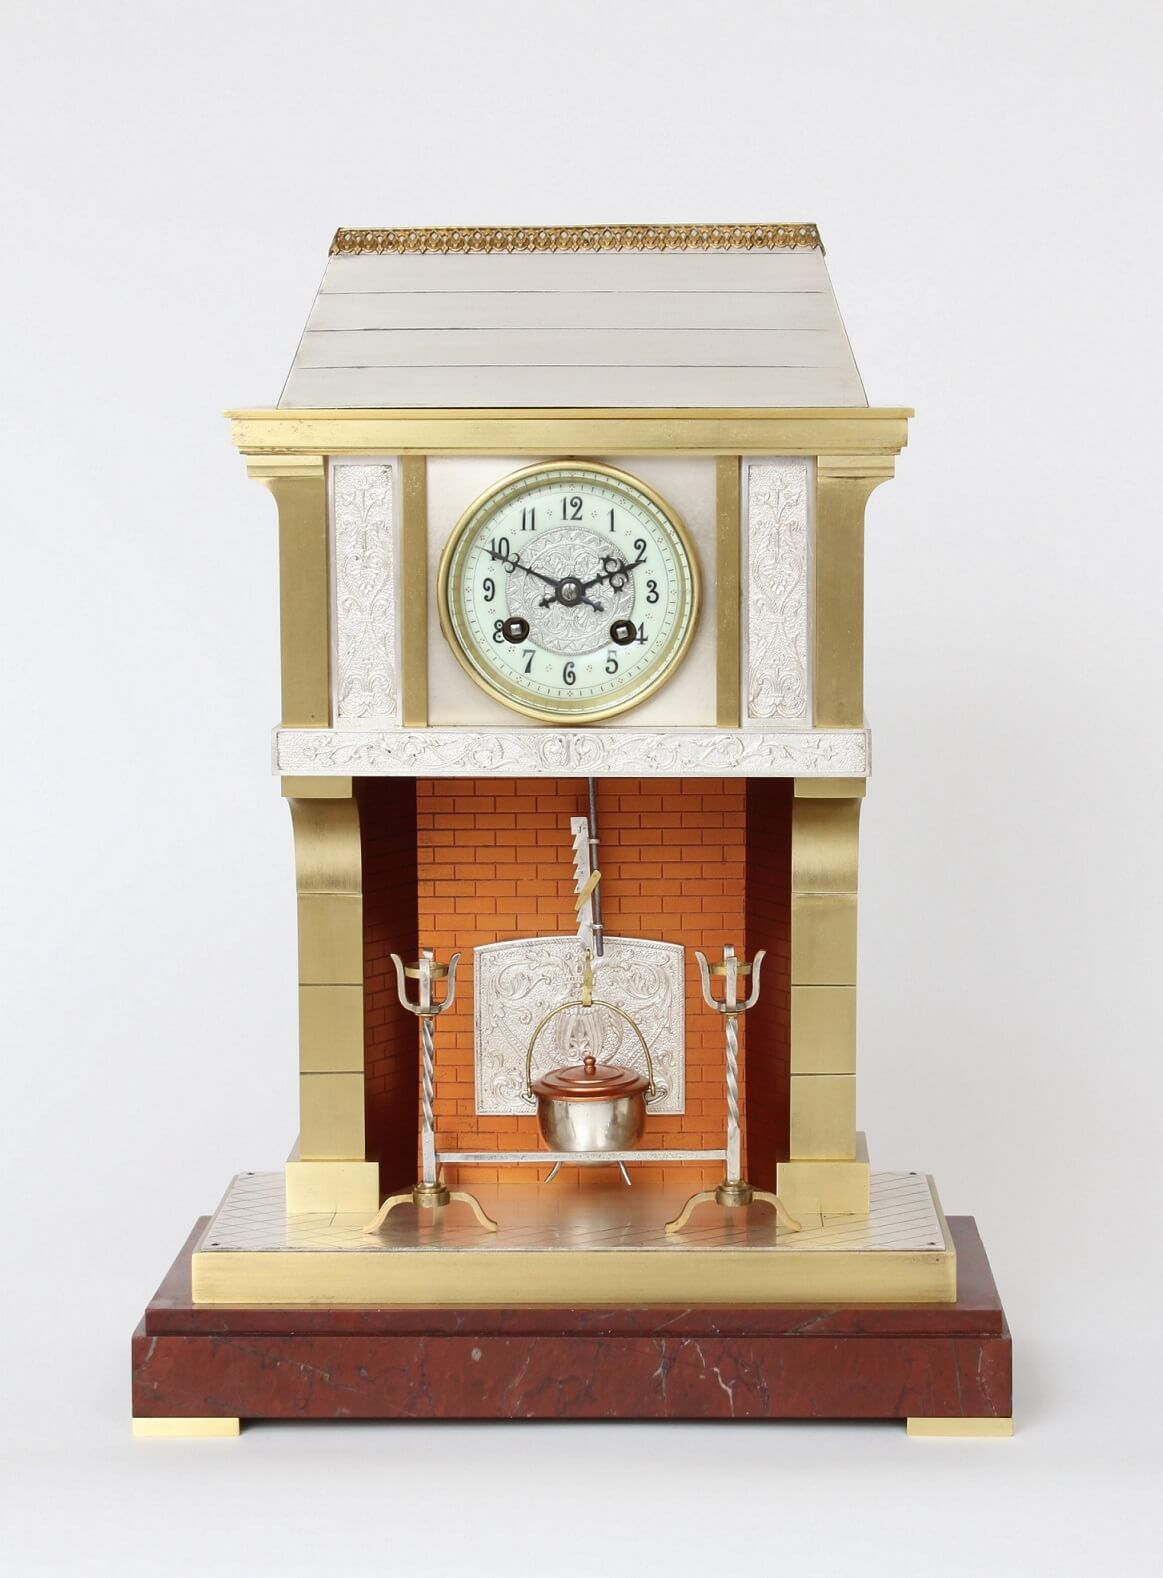 French-industrial-antique-mantel-clock-guilmet-fireplace-striking-animated